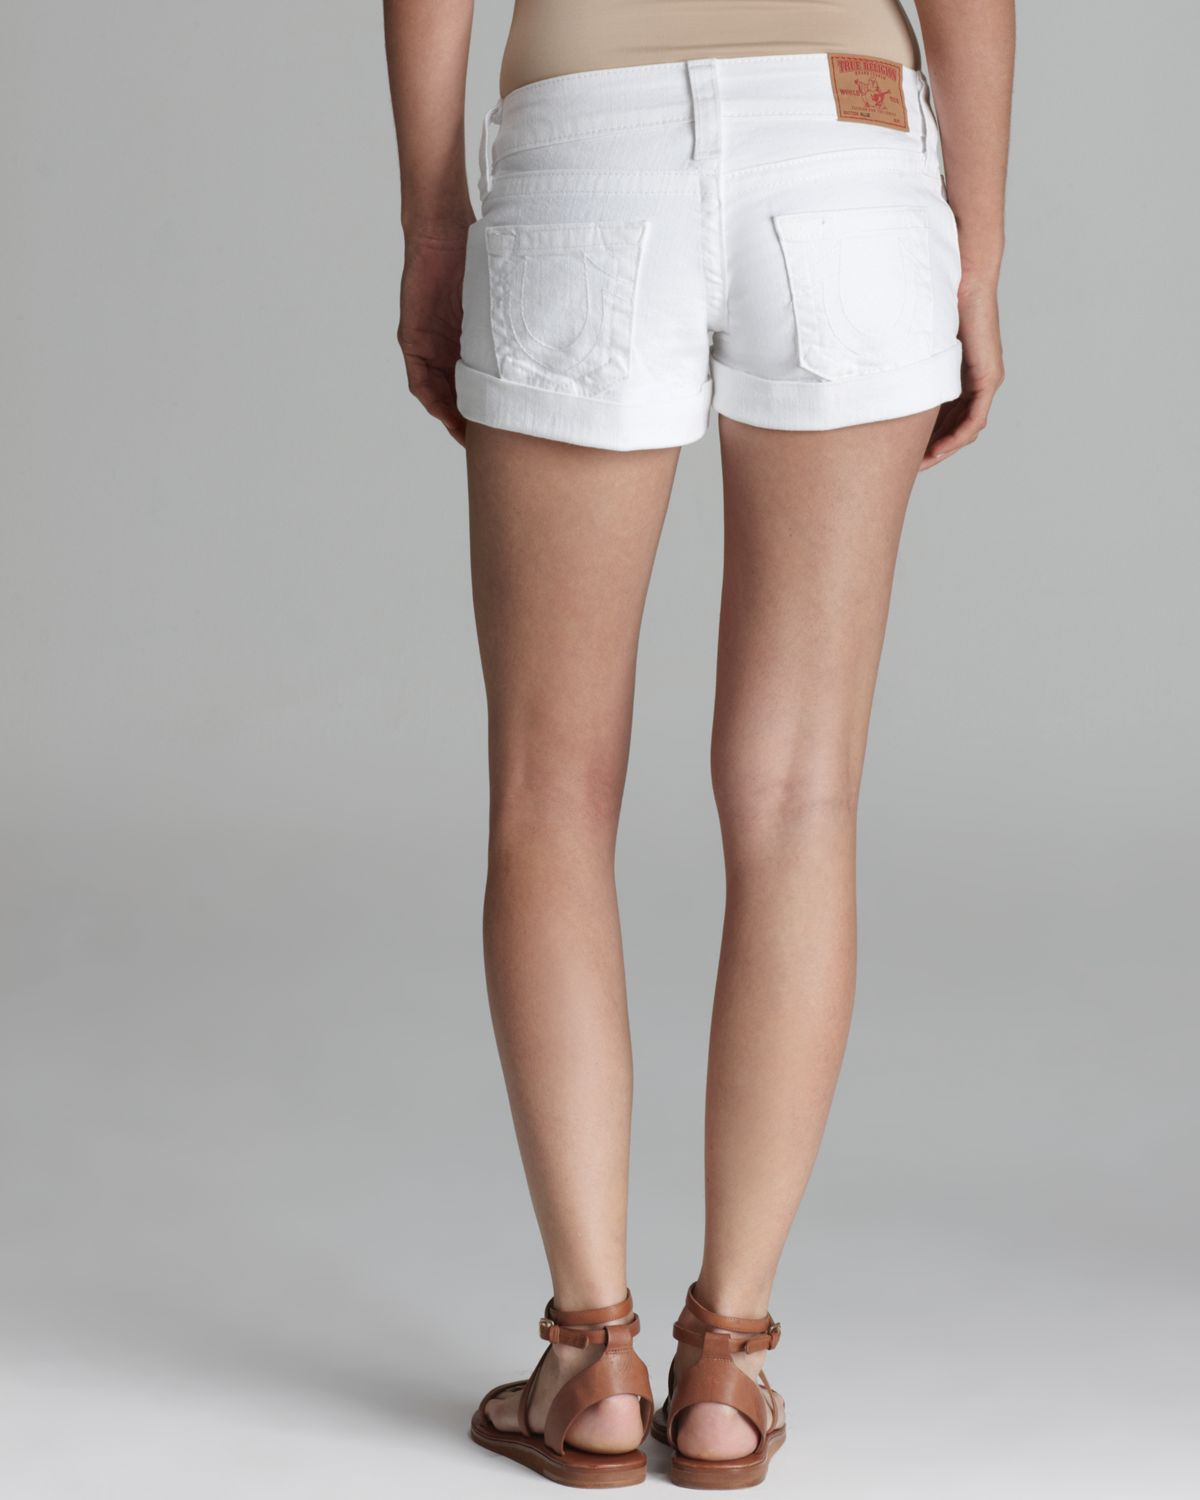 True religion Shorts Allie Cuffed in White | Lyst